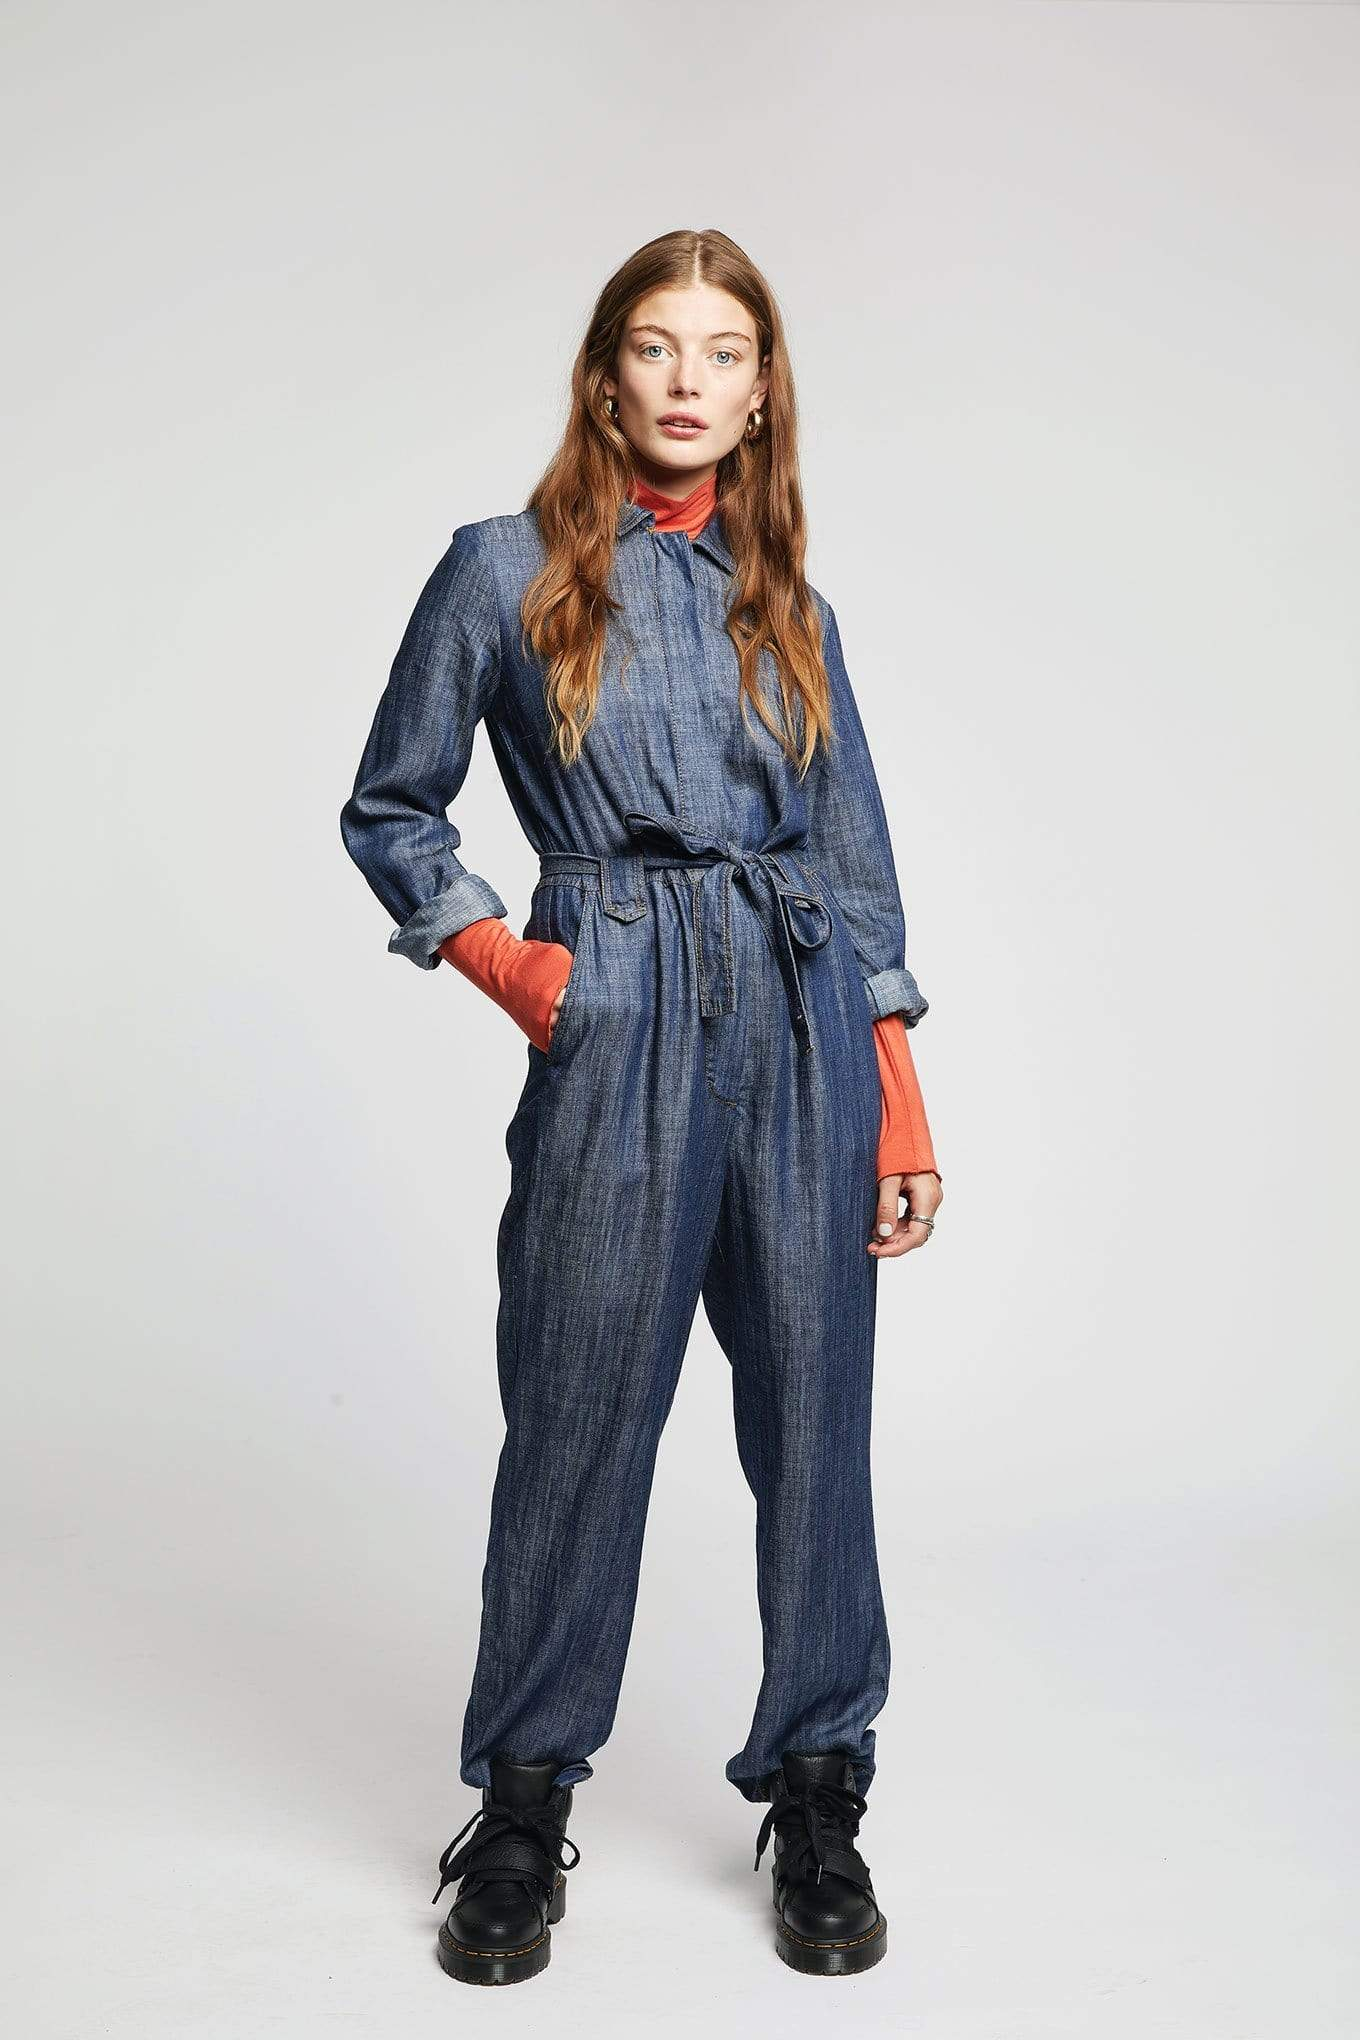 The Yakit Rakit Ltd jumpsuits SHIVA Jumpsuit in Tencel and Linen. sustainable fashion ethical fashion